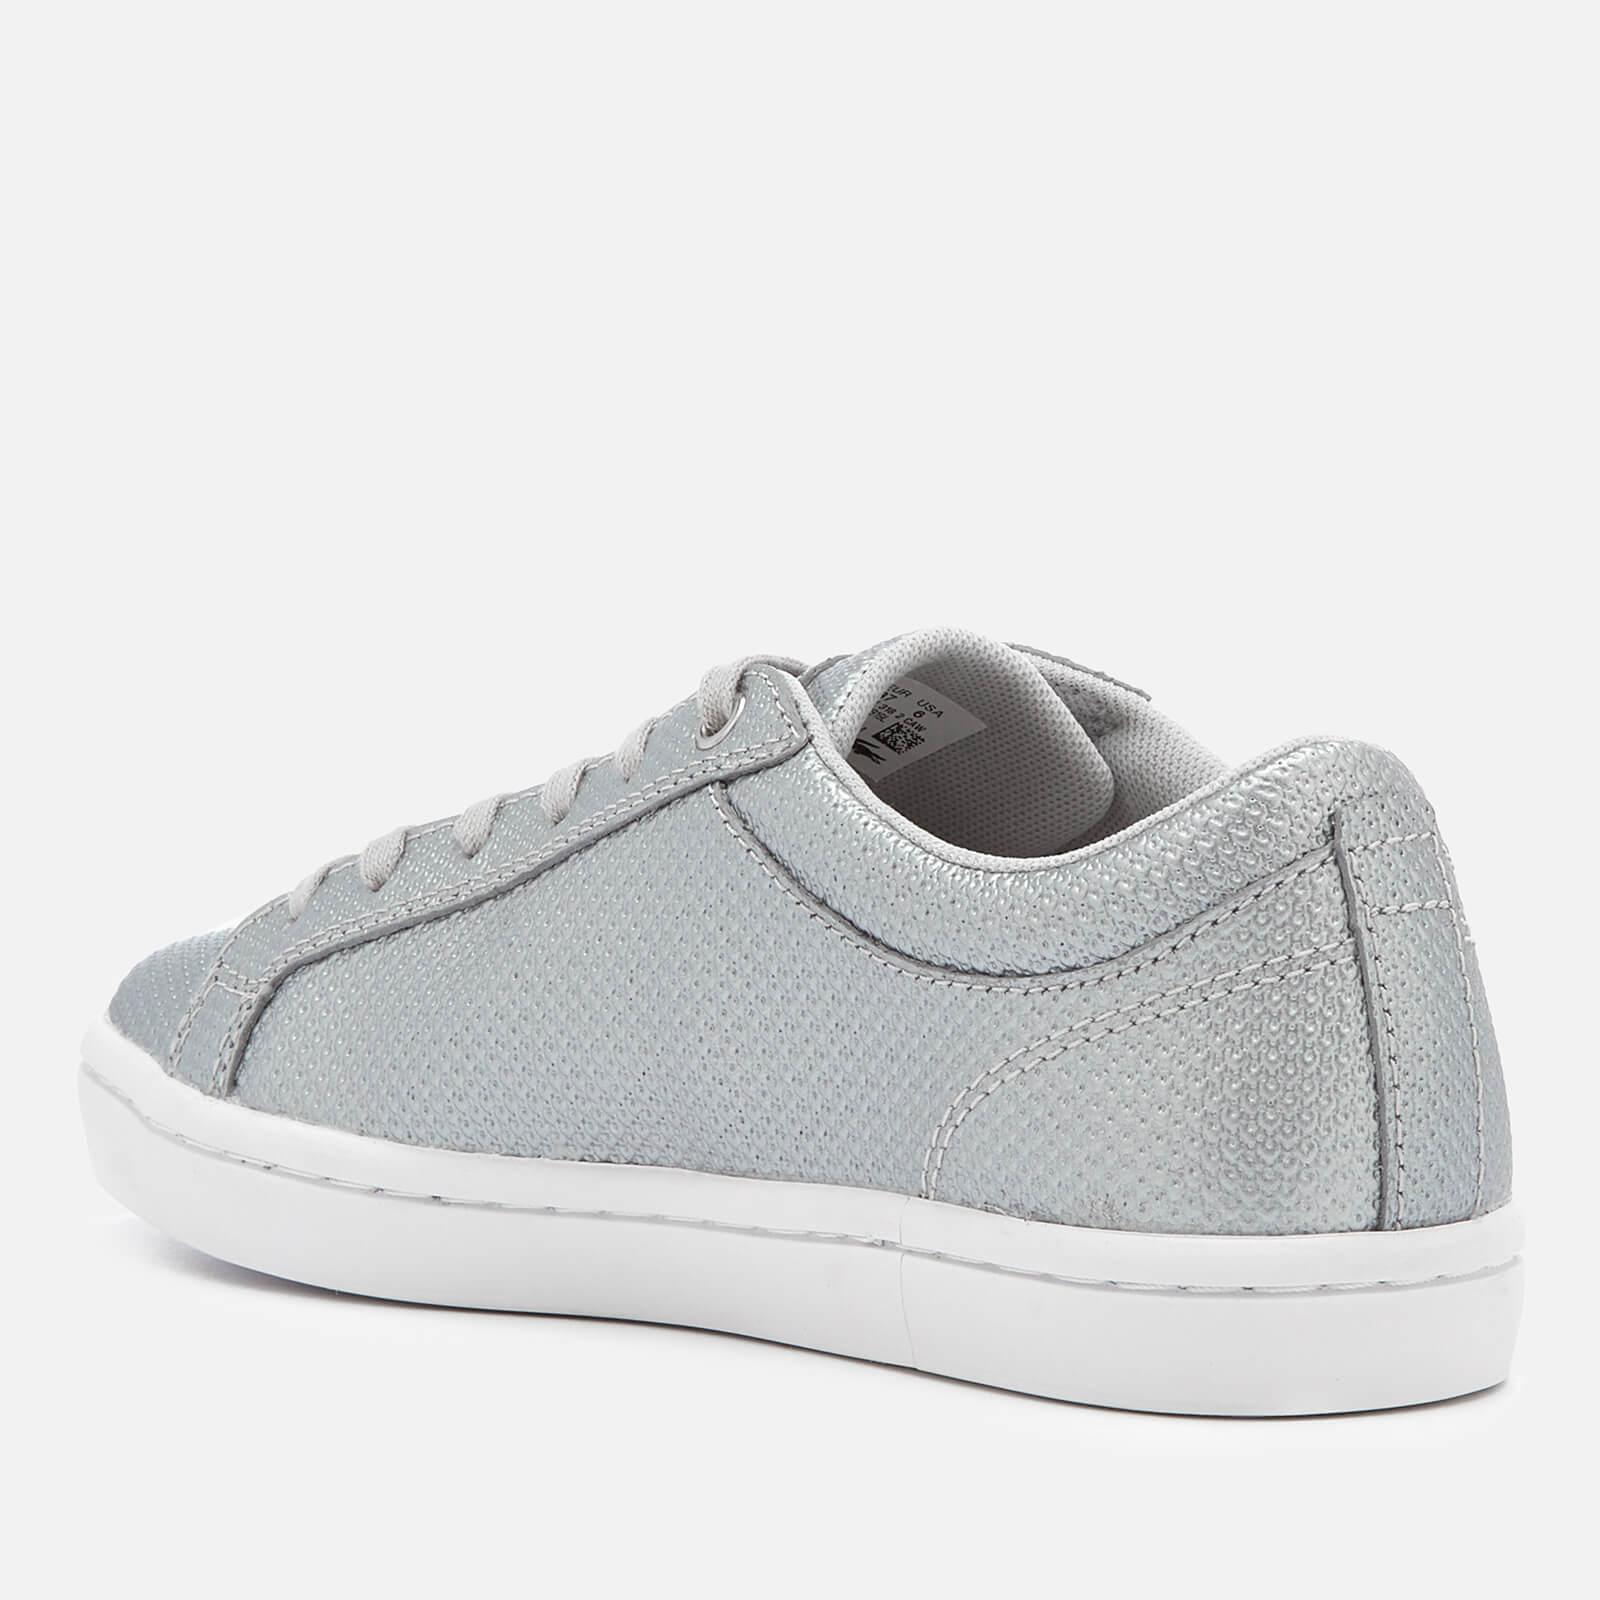 Lacoste - Metallic Women s Straightset 318 2 Embossed Leather Trainers -  Lyst. View fullscreen 0f2f488dbc